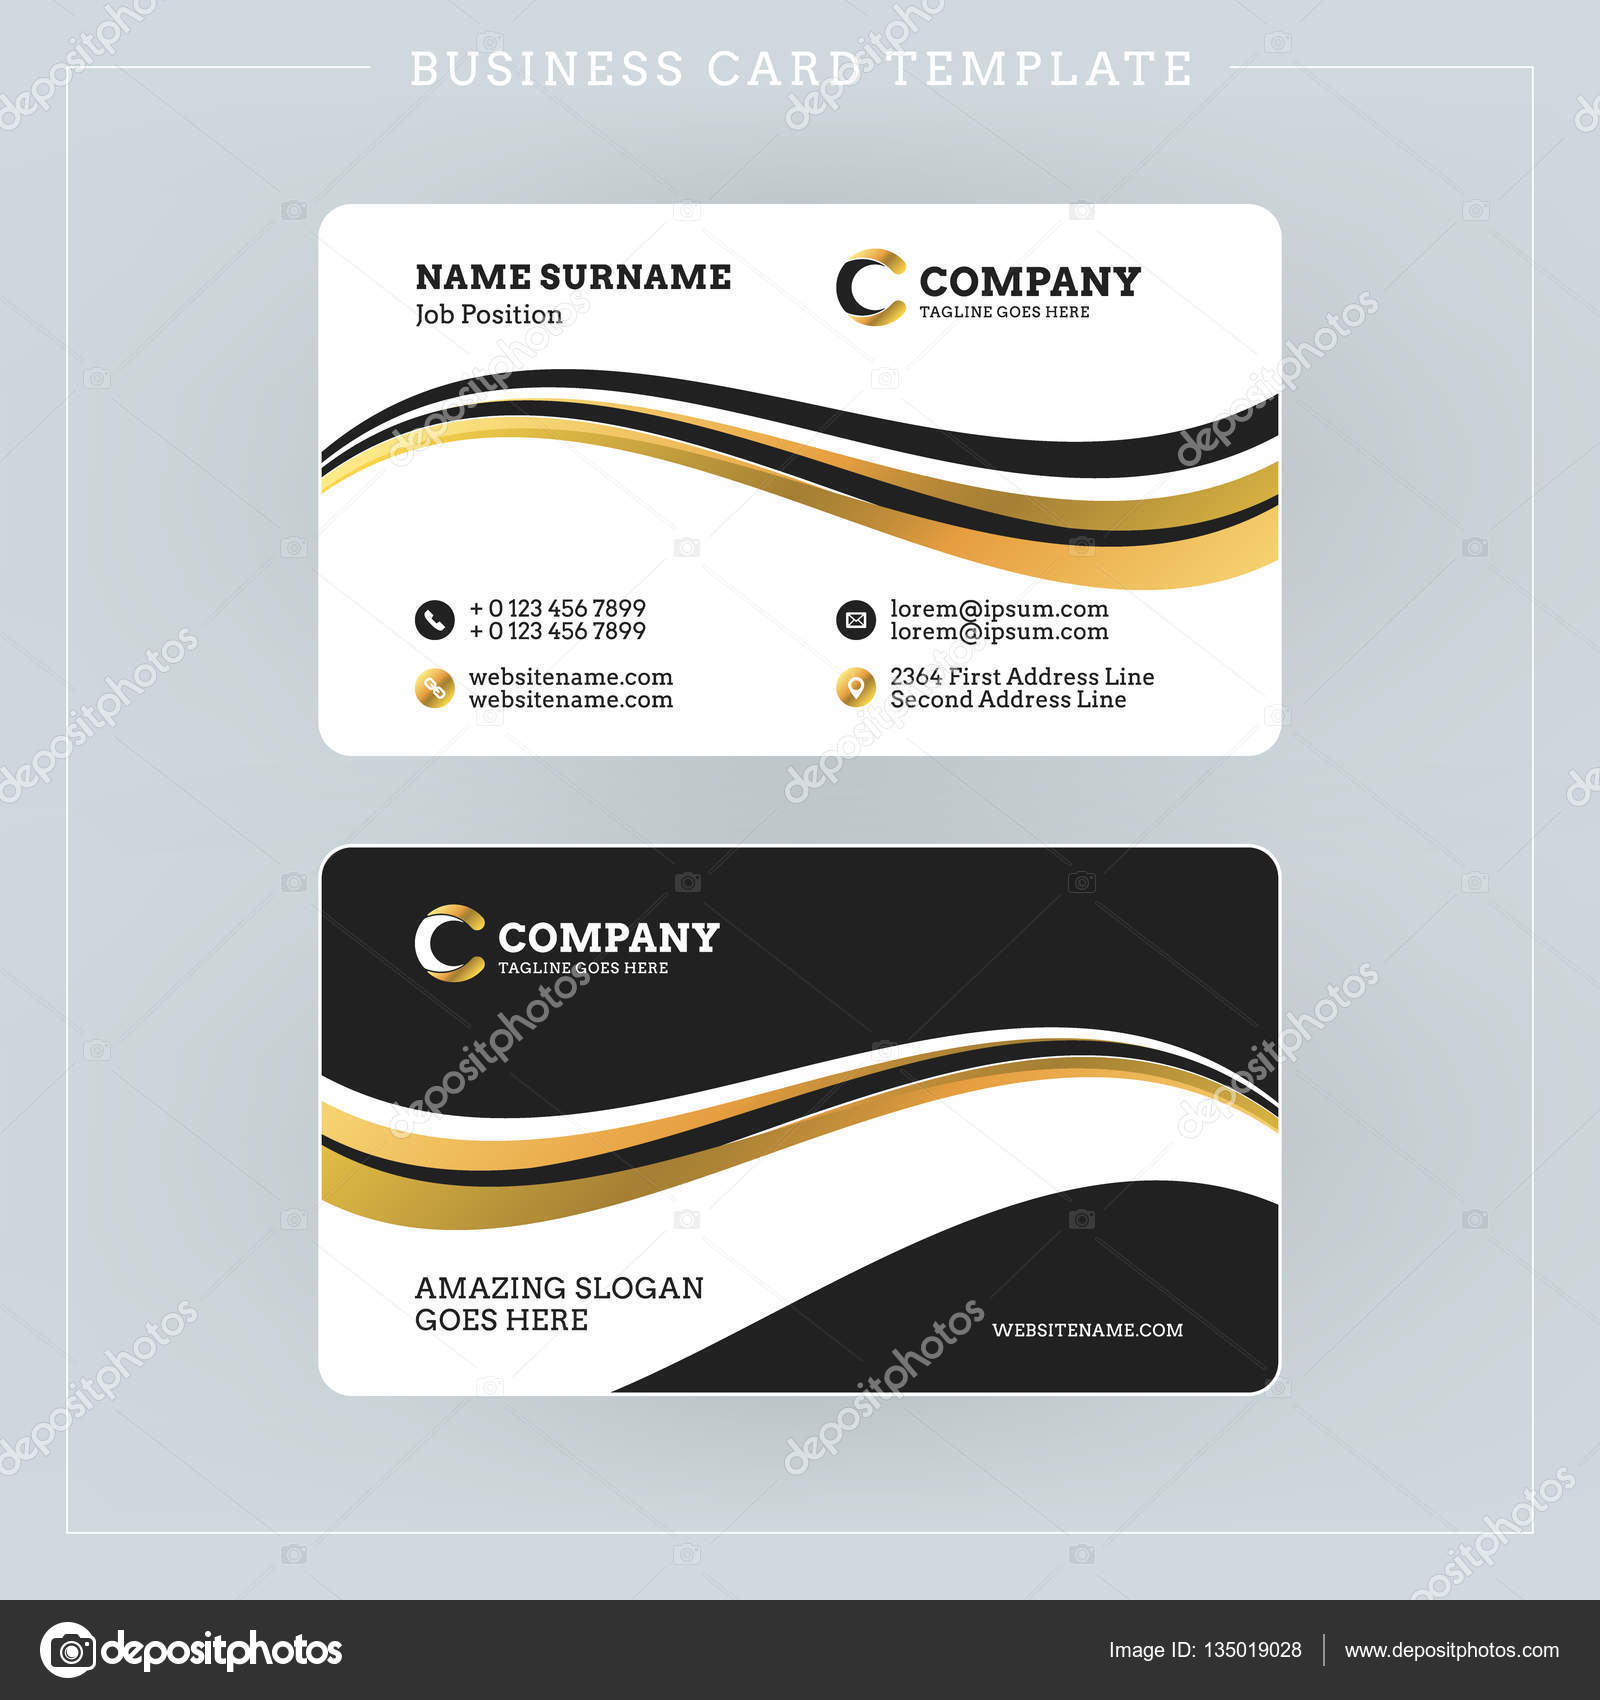 Double sided business card template with abstract golden and black double sided business card template with abstract golden and black waves background vector illustration flashek Gallery